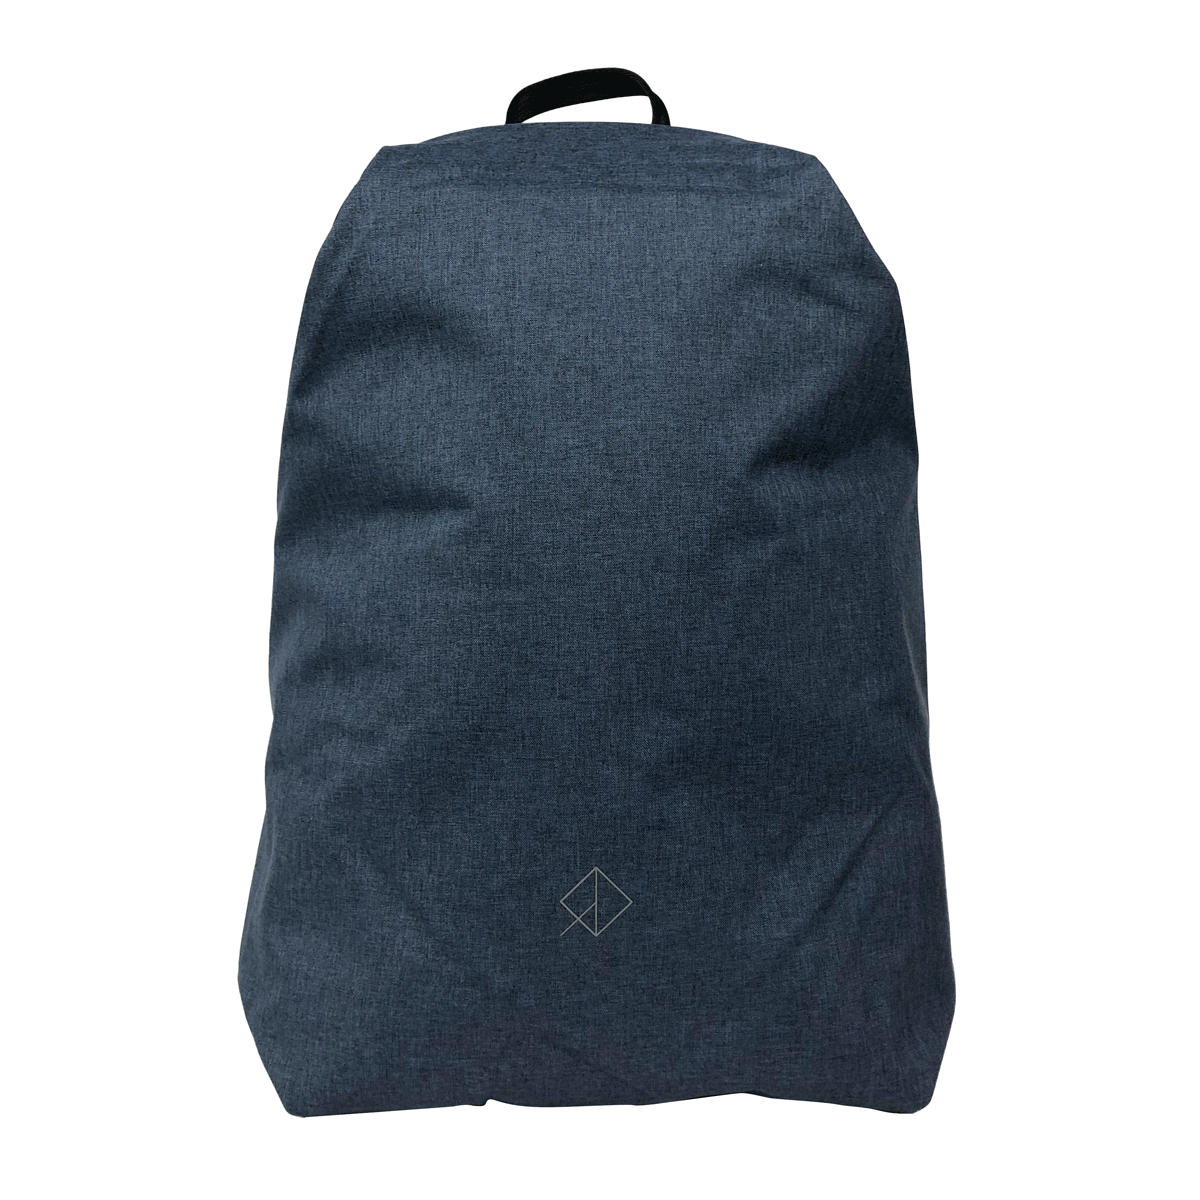 URBAN BACKPACK NAVY